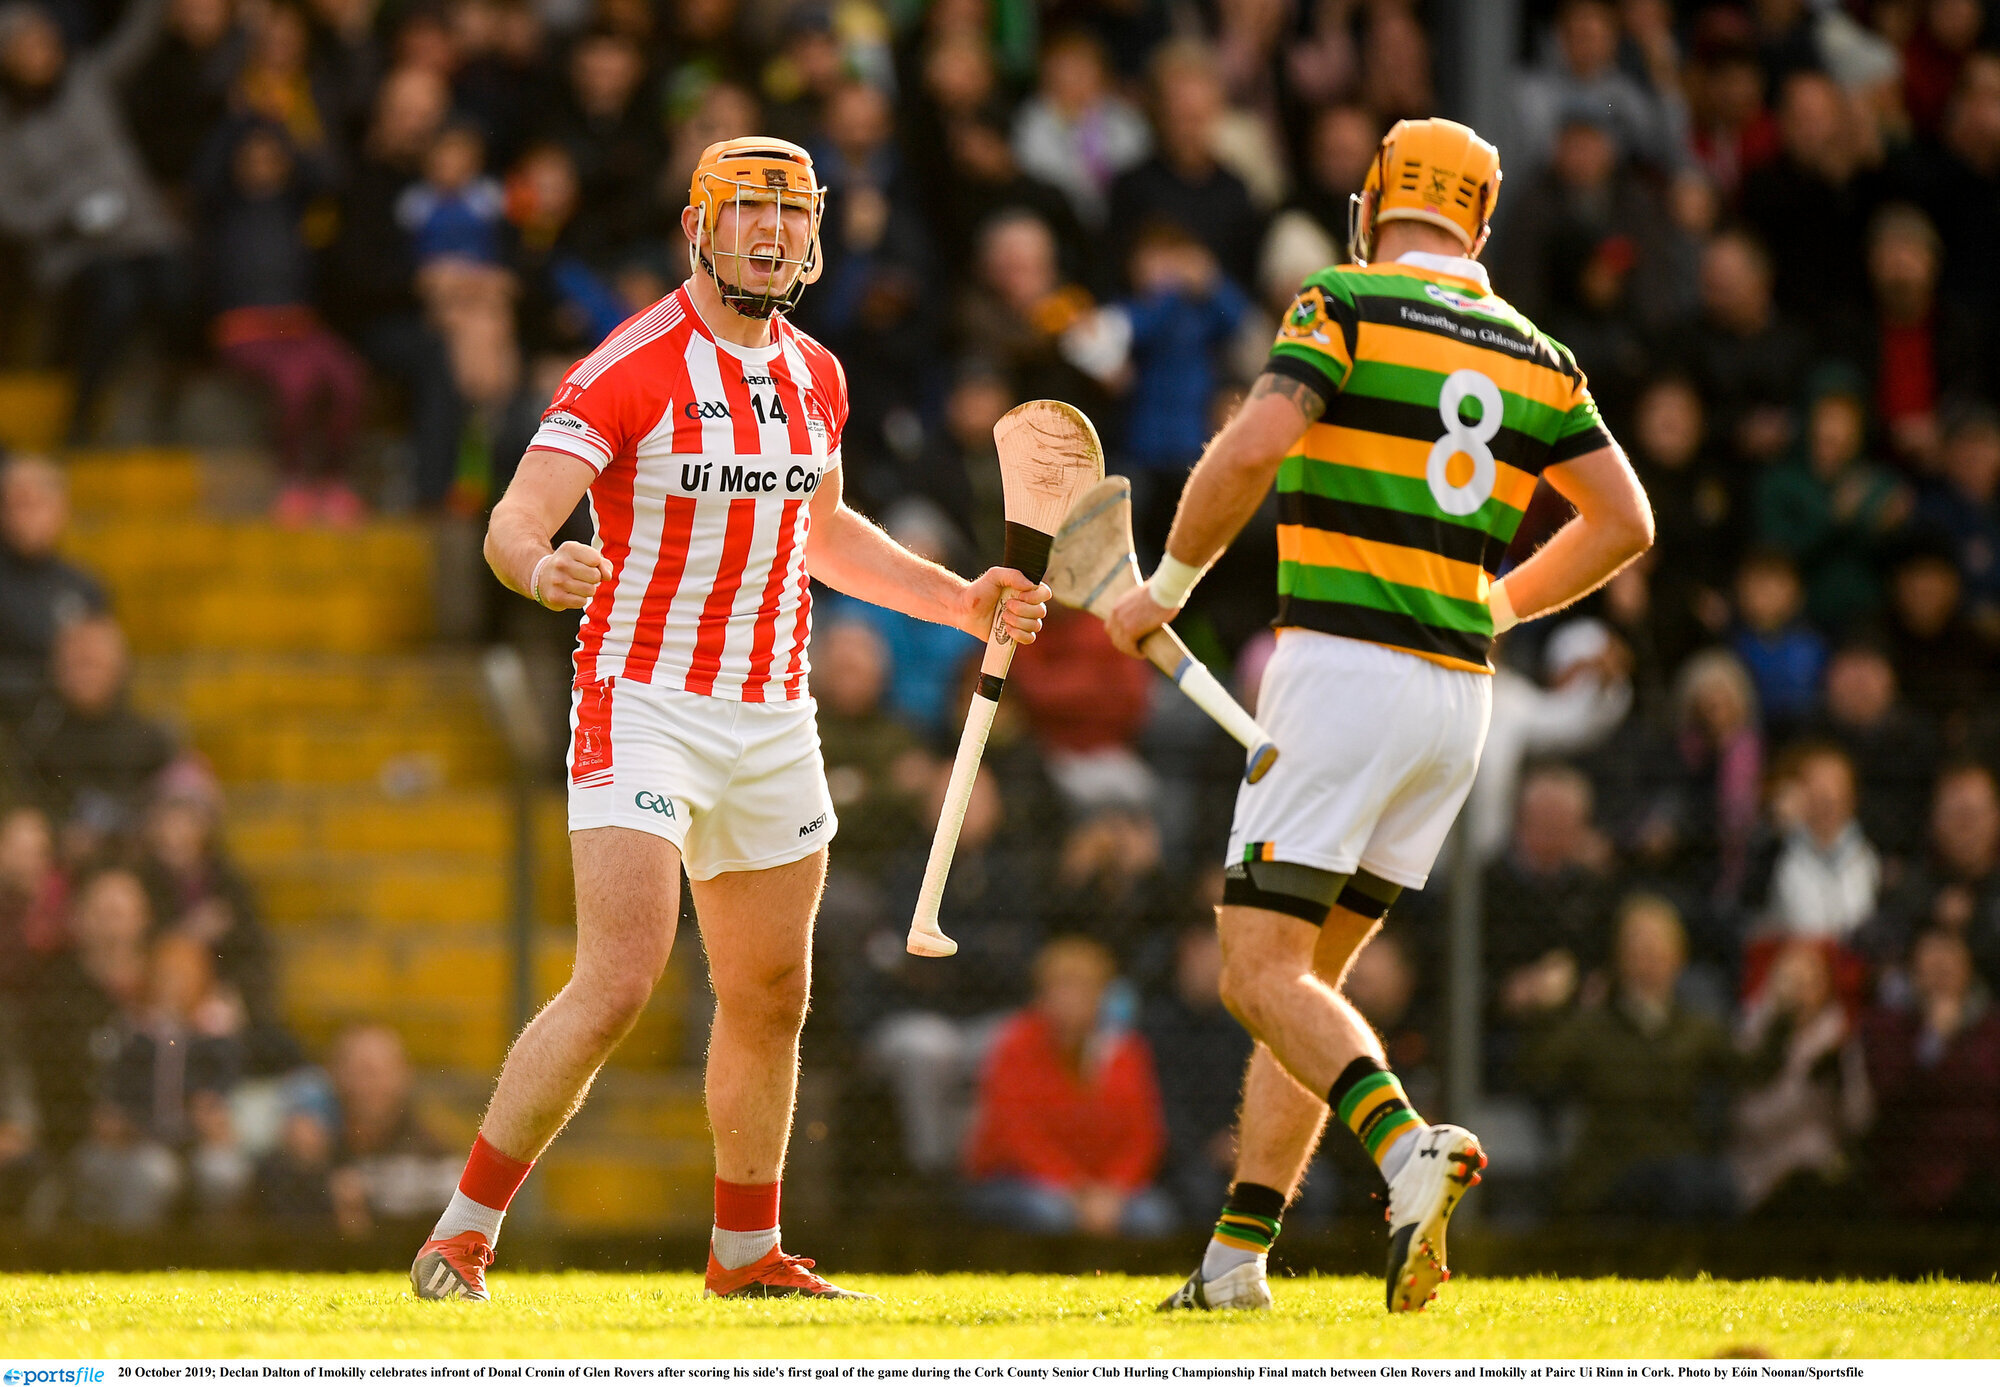 New executive set for Imokilly GAA, including only the eighth ever secretary - Echo Live